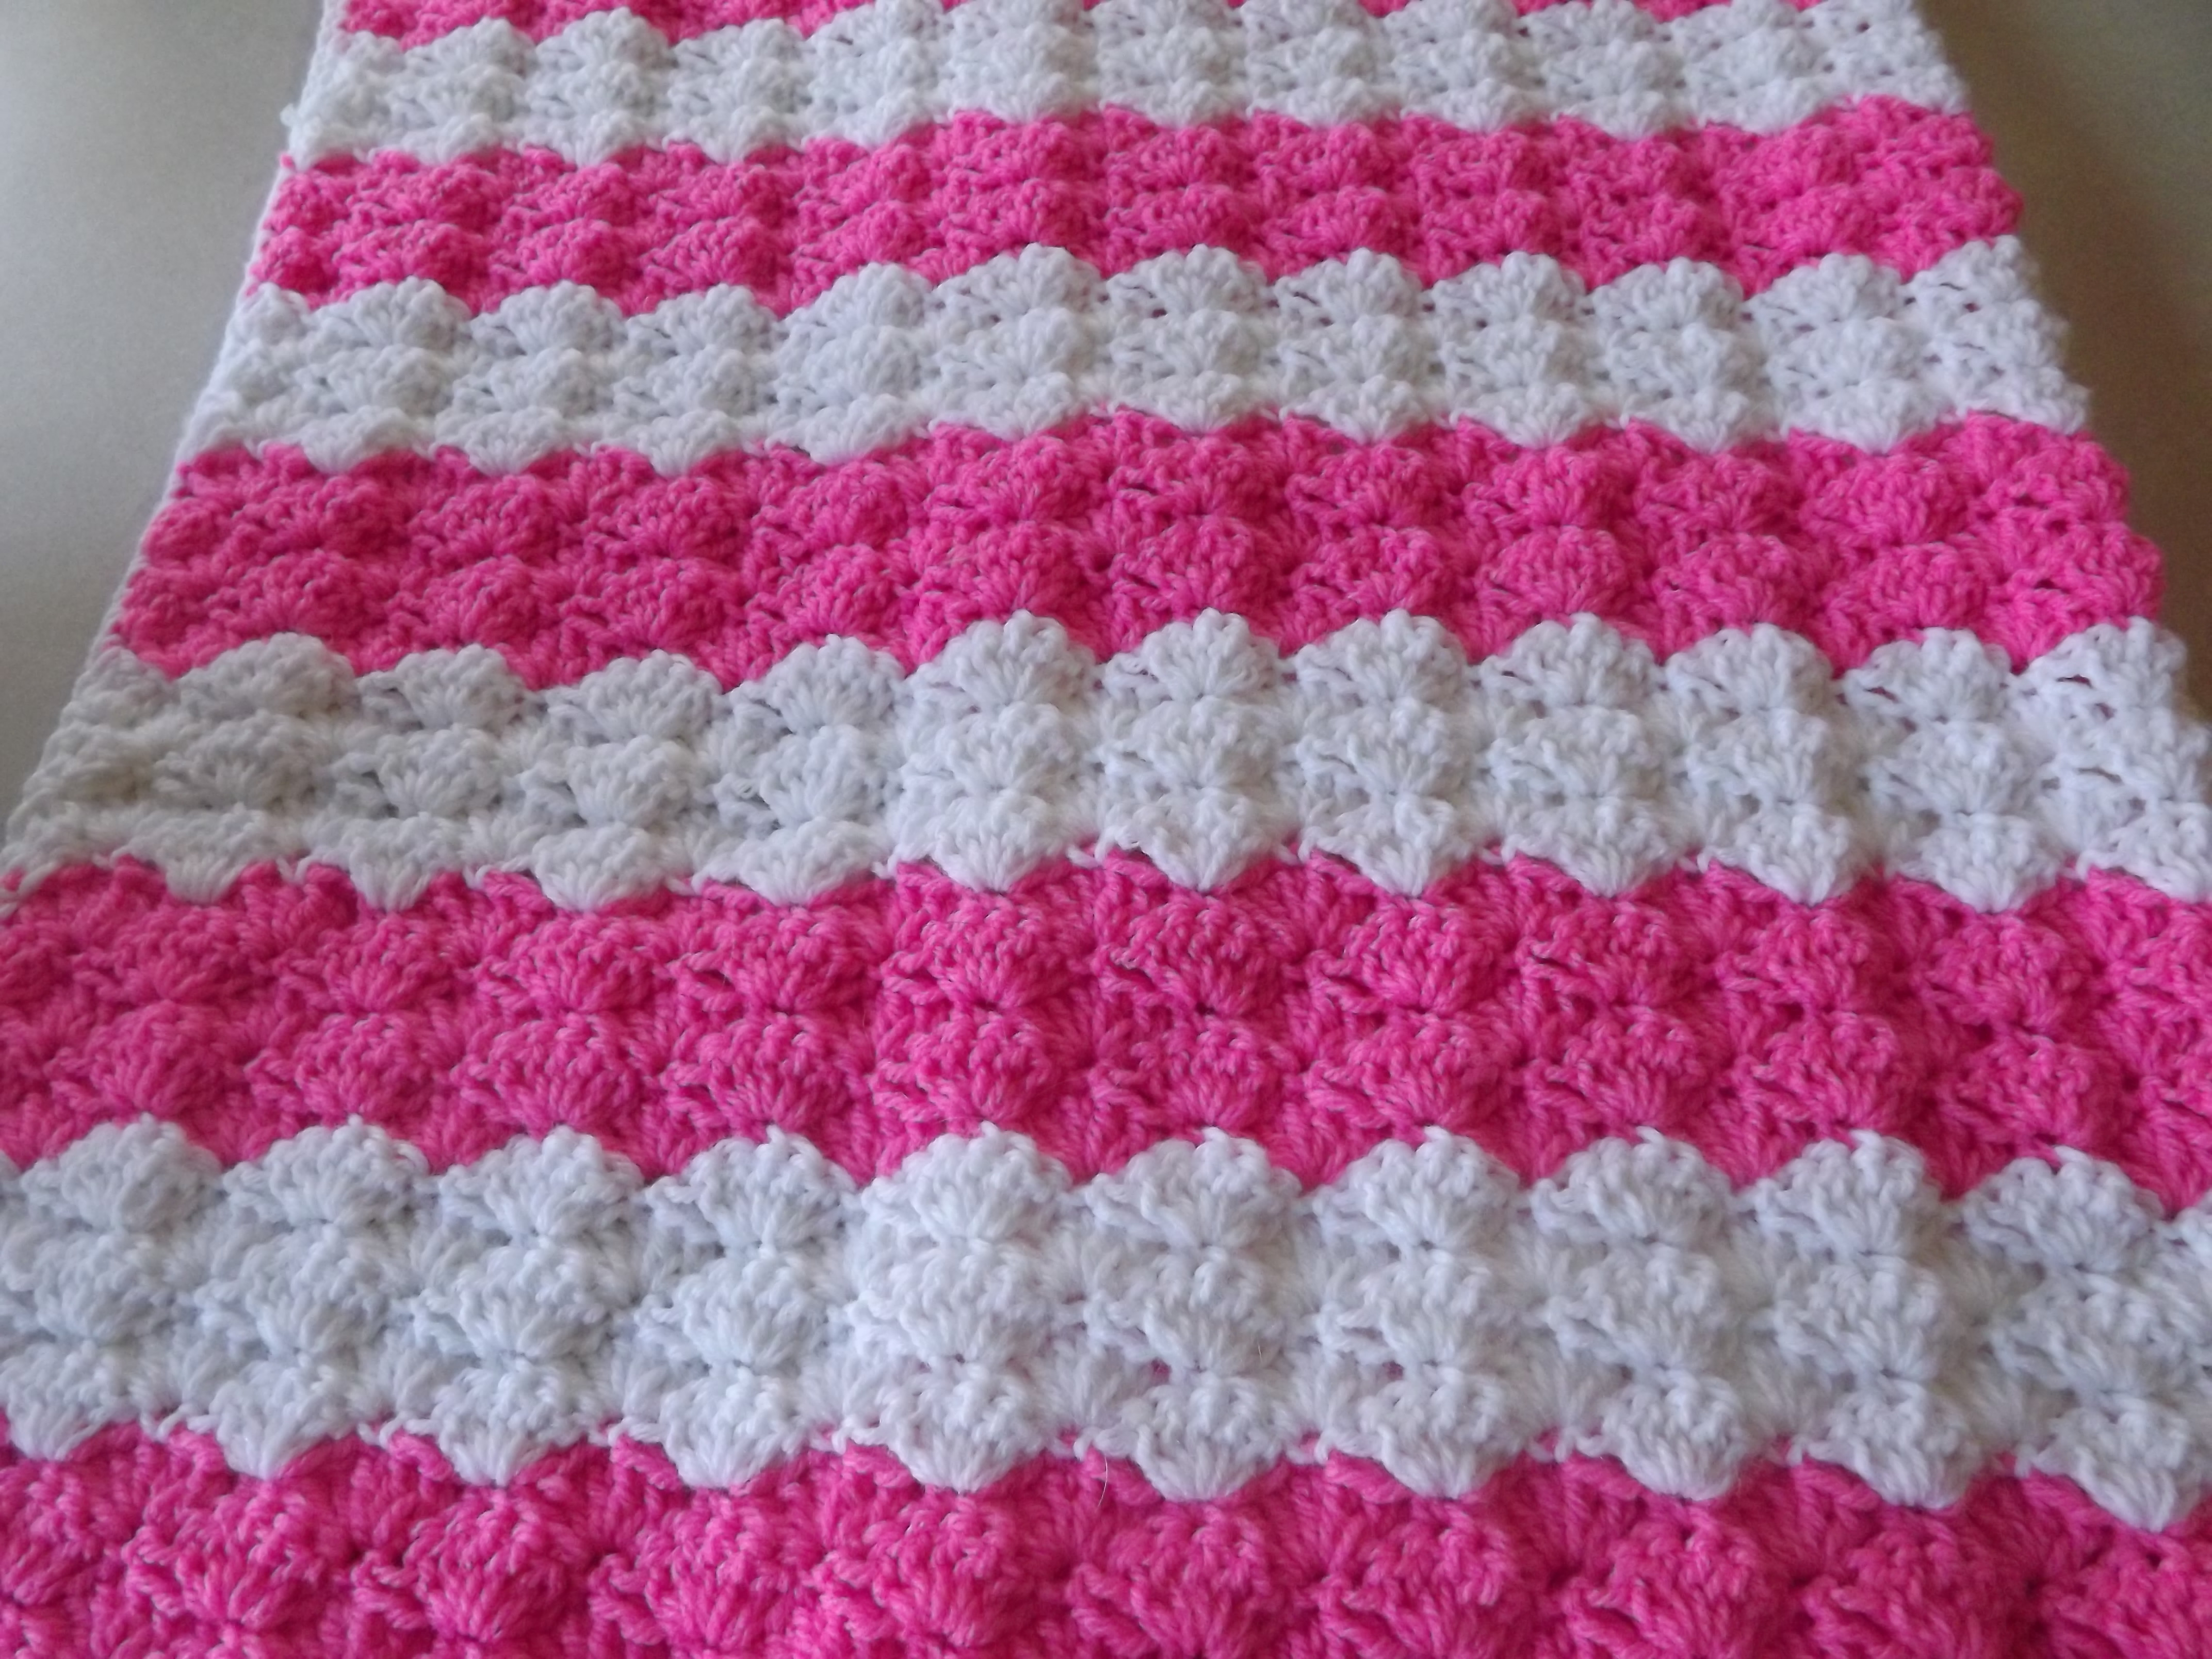 Crochet Stitches for Baby Blankets Inspirational Crochet Patterns Galore Pretty Shells Baby Blanket Of Amazing 45 Pics Crochet Stitches for Baby Blankets